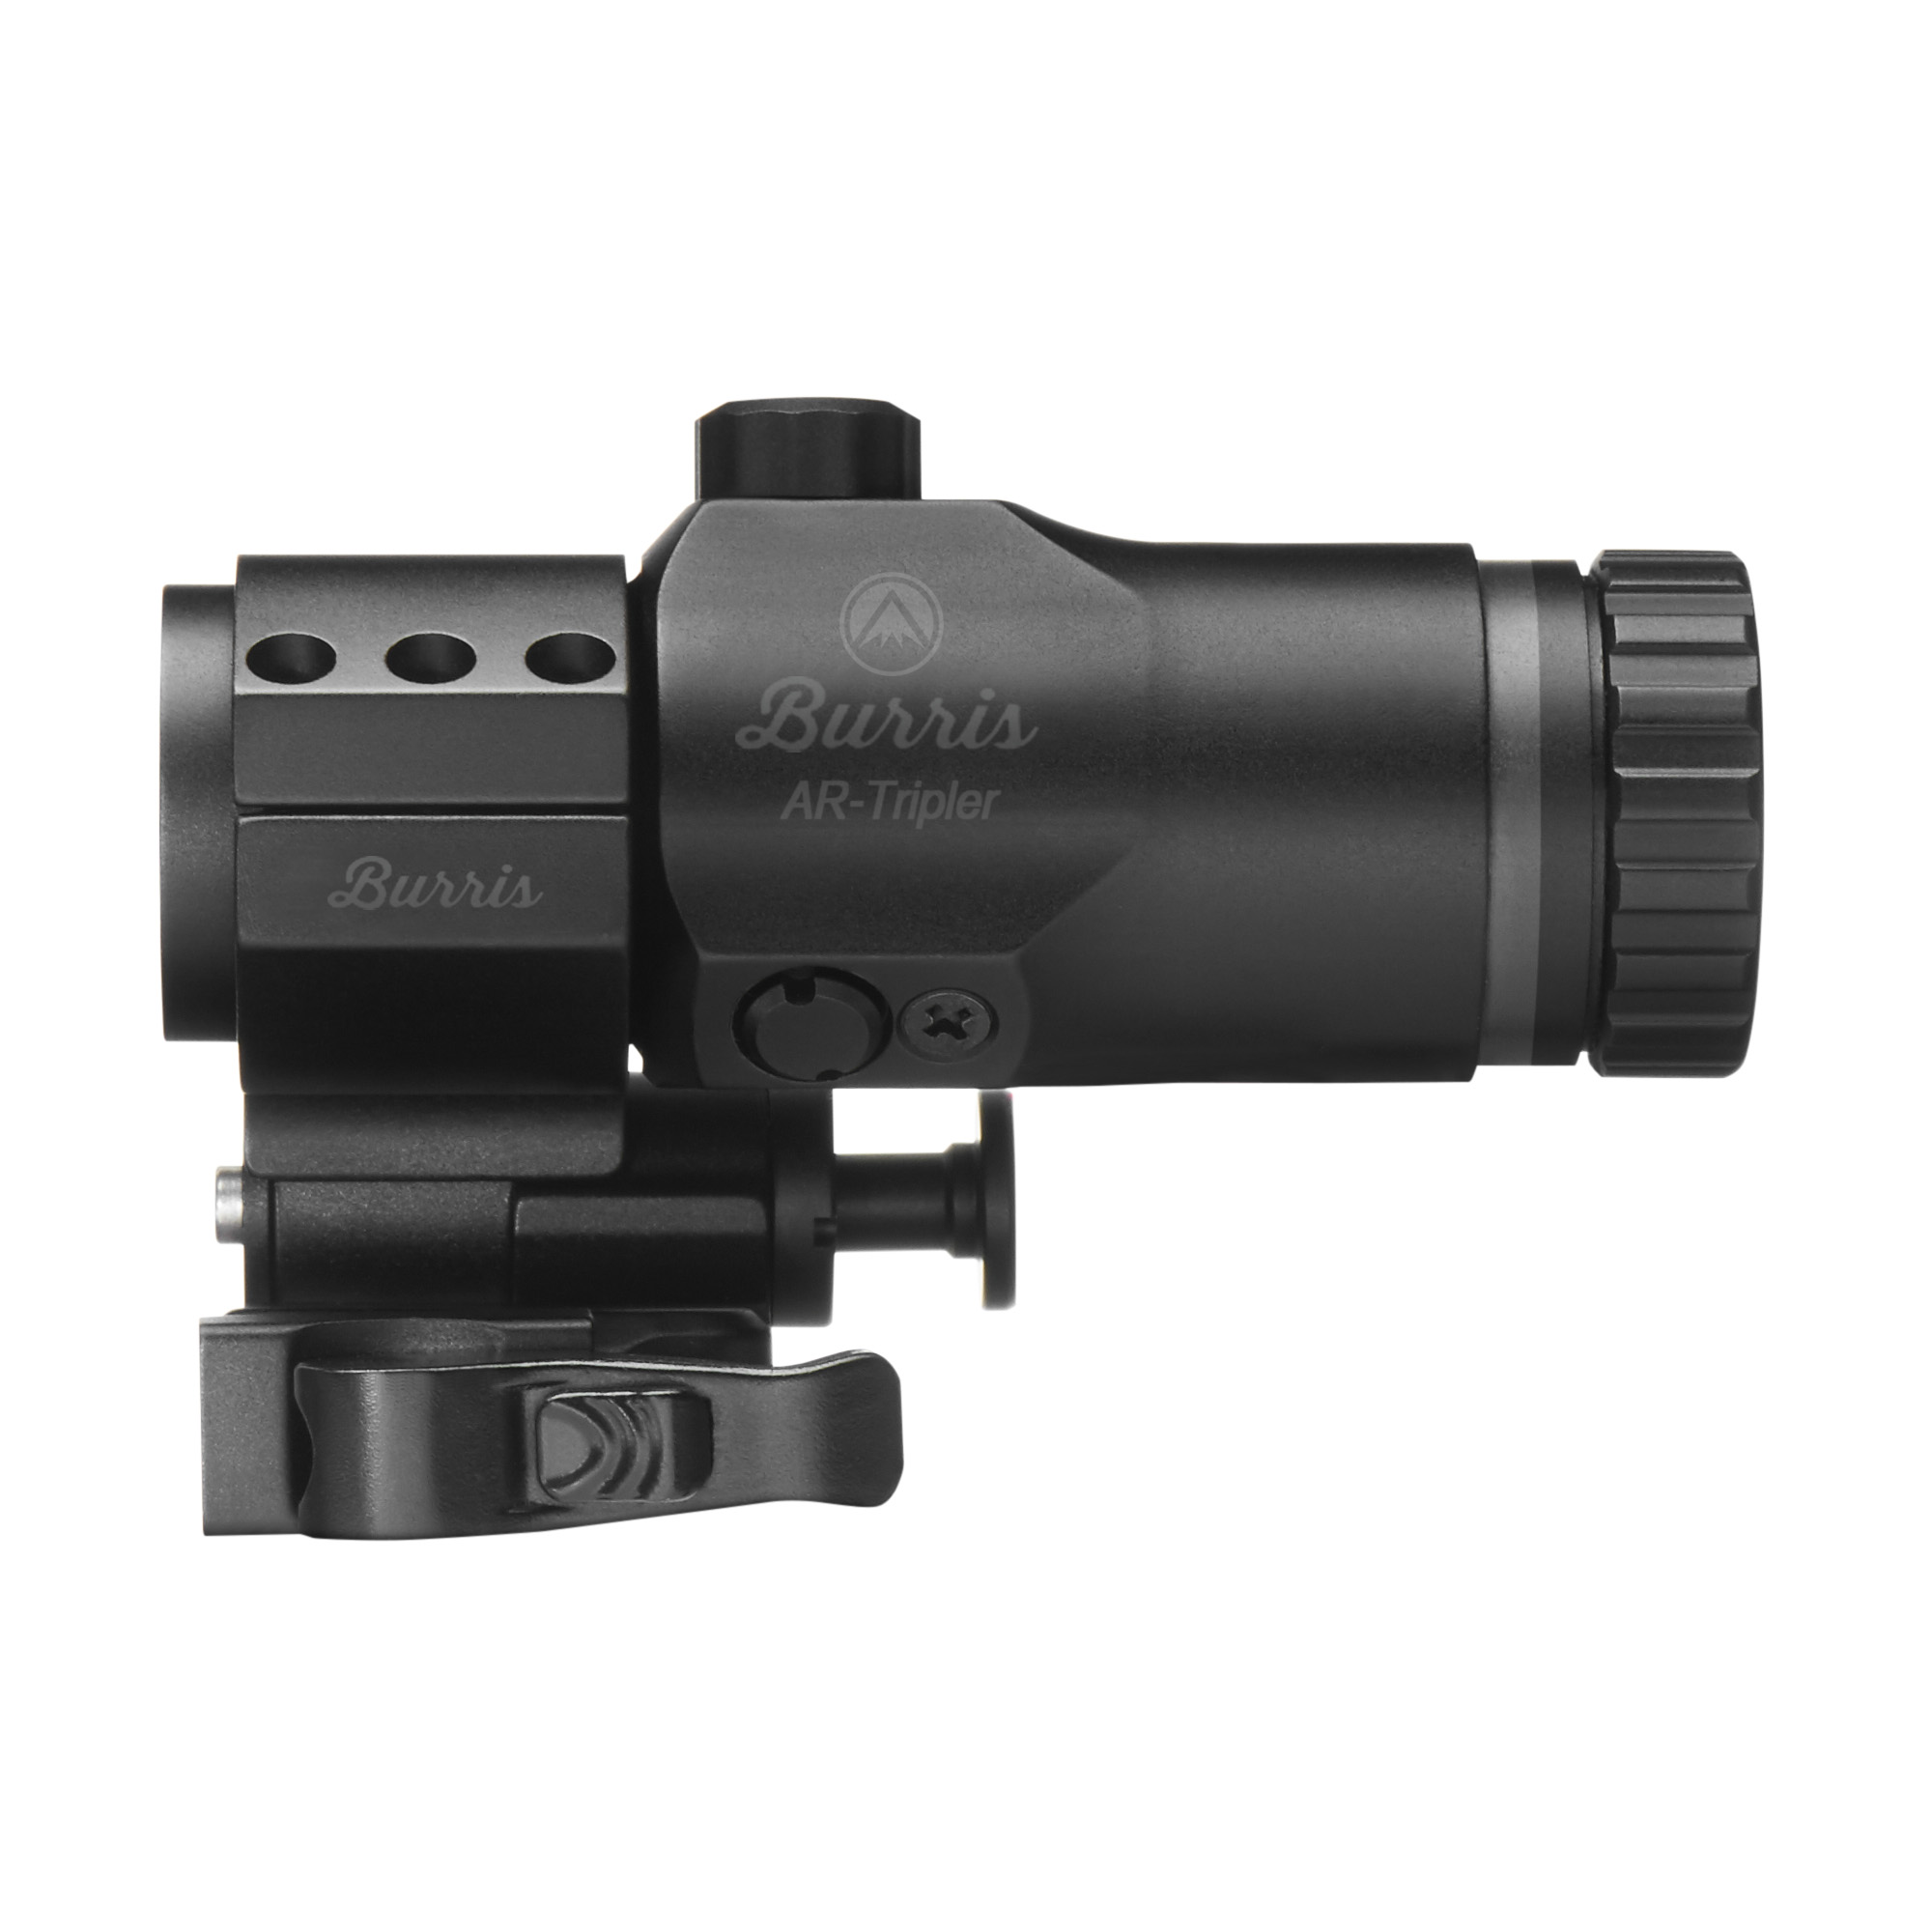 "Adds 3x magnification to any 1x non-magnified optic. When you want to be able to transition to mid-distance - and back again - without swapping weapons or optics"" the AR-Tripler is your solution. Mounted in the optional AR-QD pivot ring"" it rides in tandem behind your CQB optic but pivots off with the push of a button. The windage and elevation adjustments allow you to use the complete reticle image of partner optics."